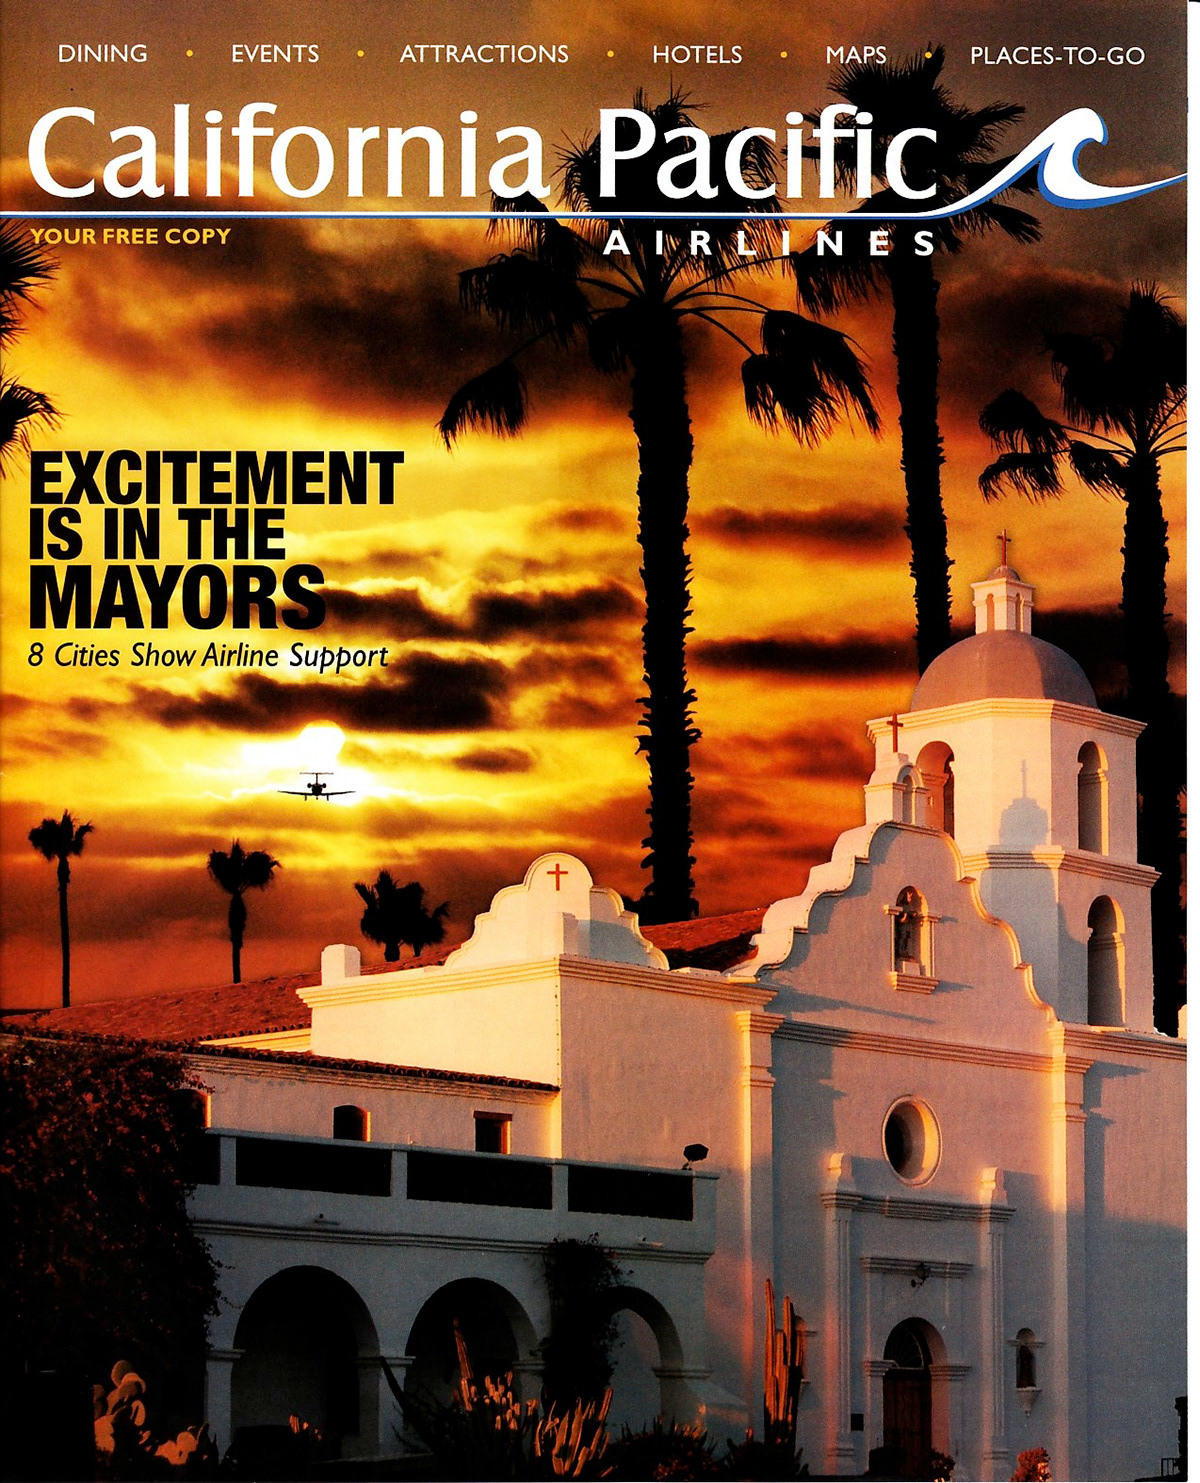 California Pacific Airlines Spring 2012 Issue